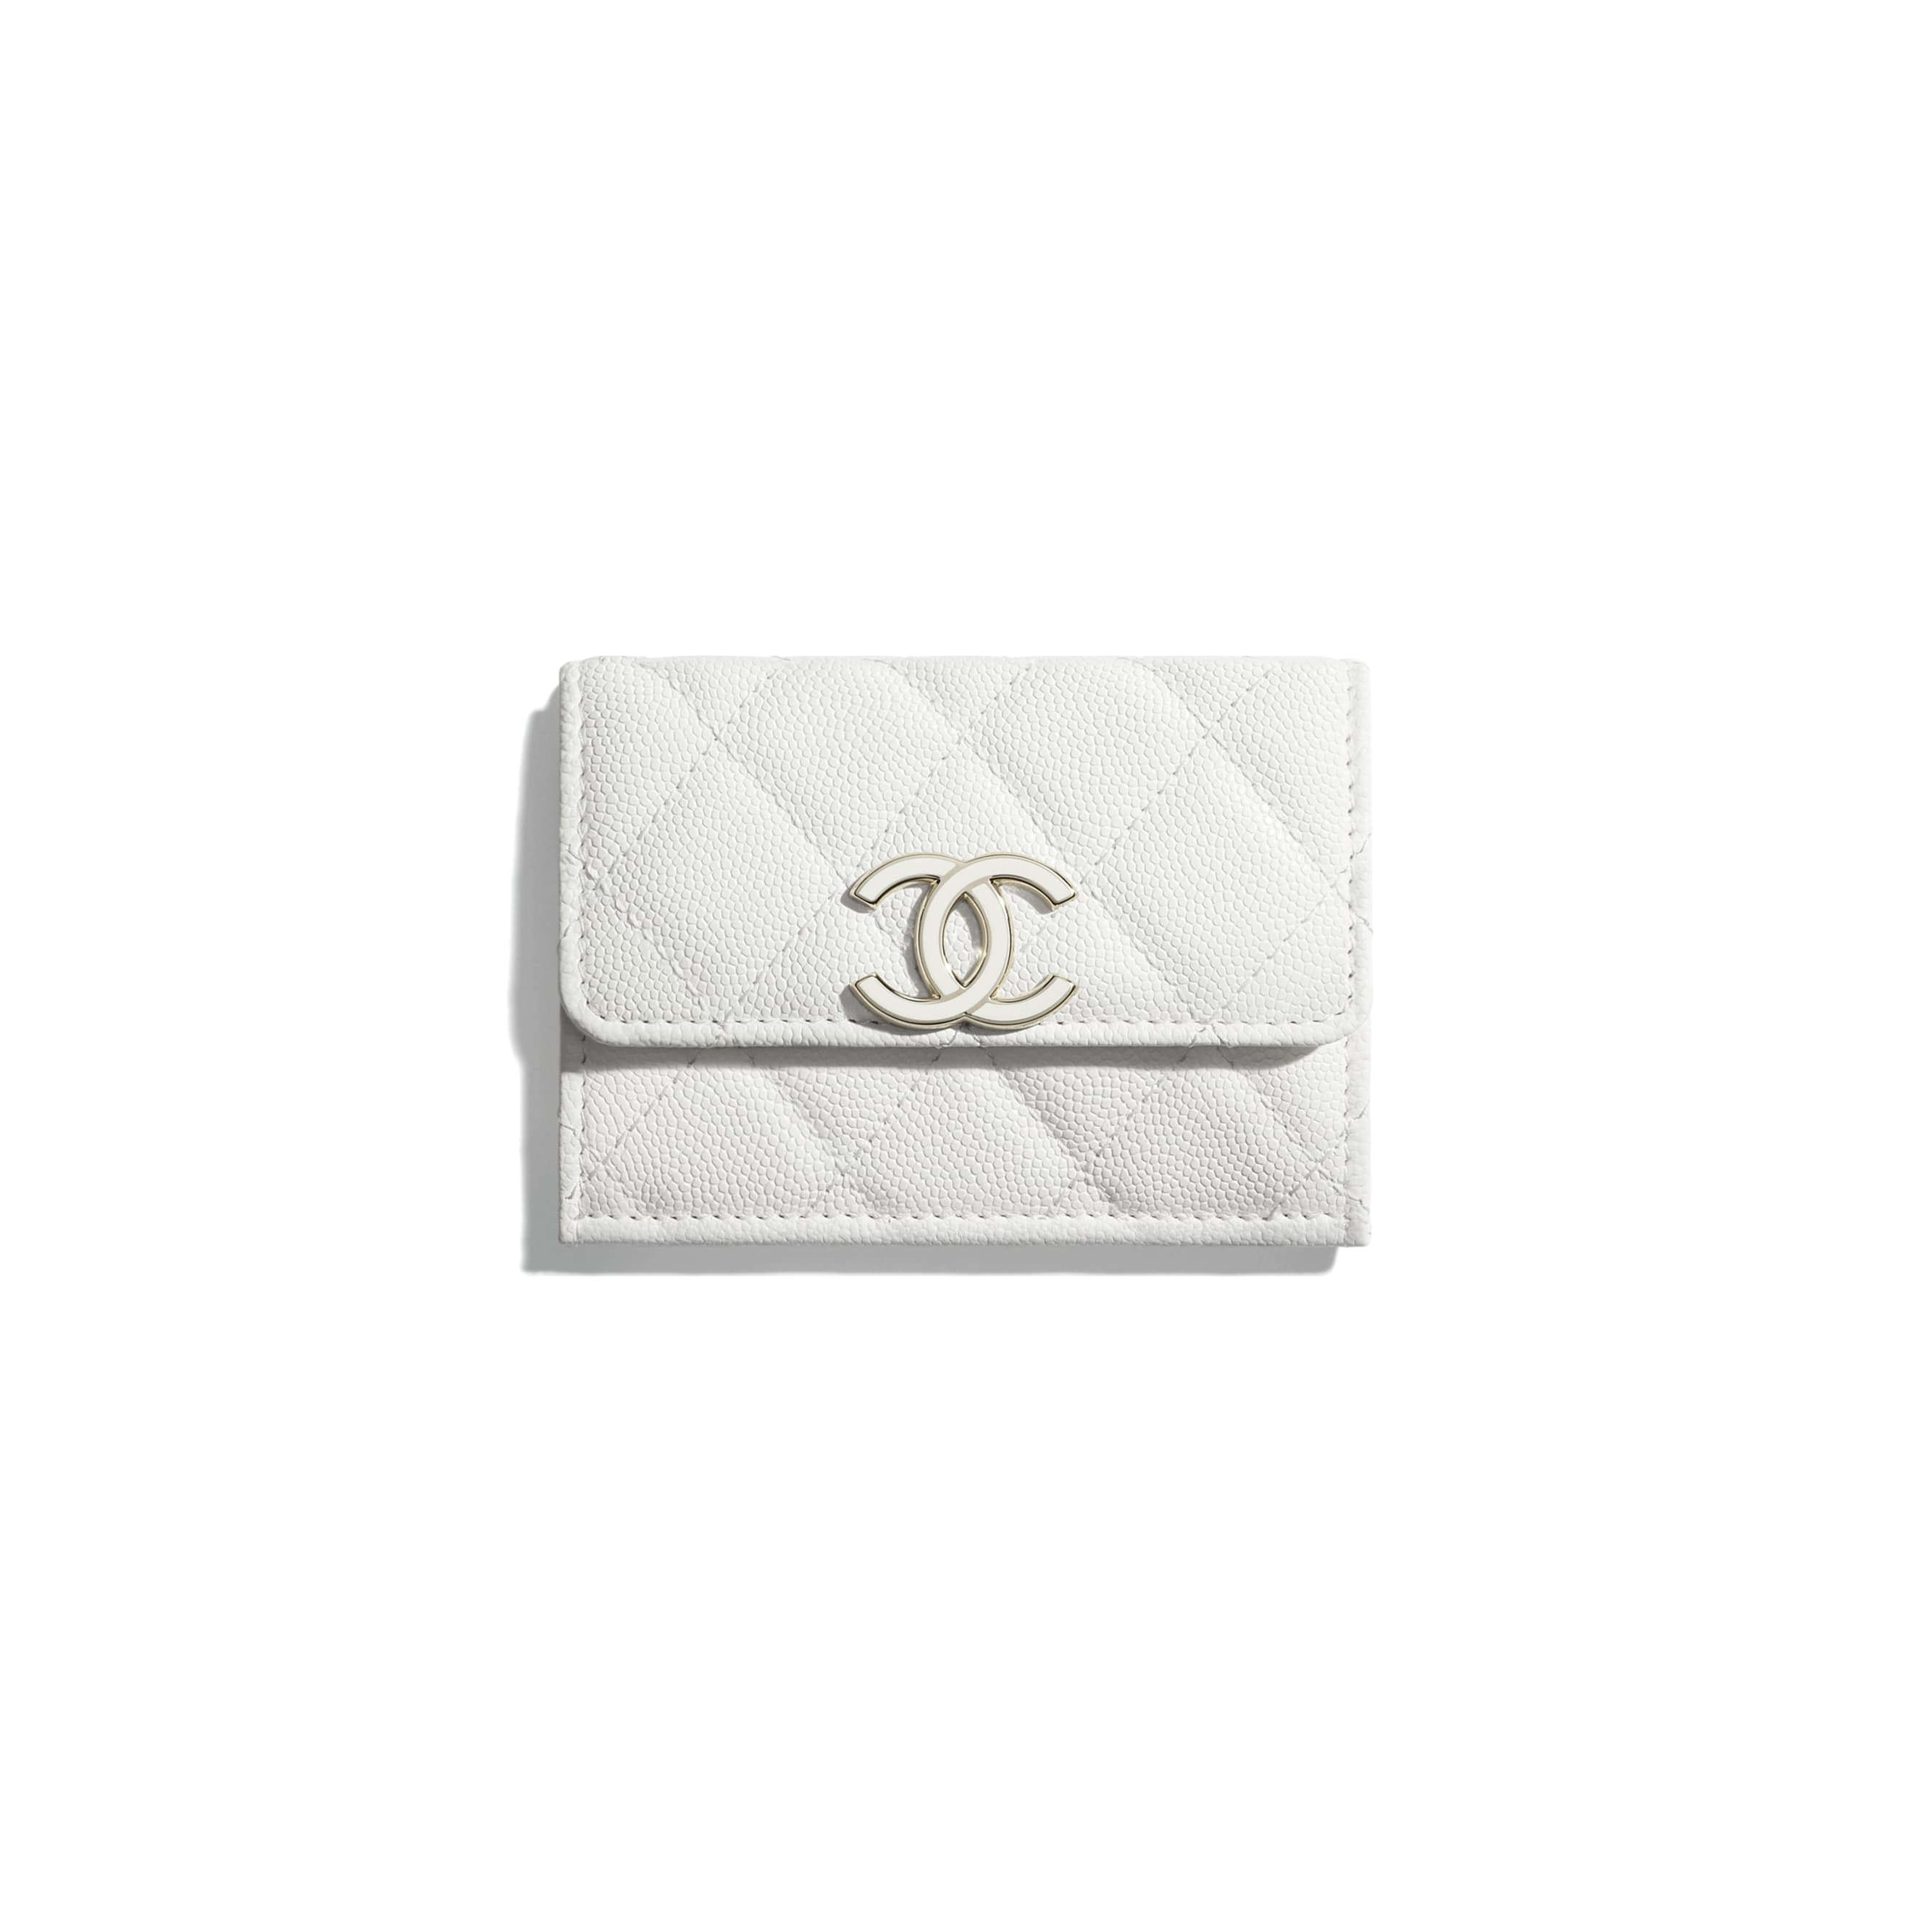 Small Flap Wallet - White - Shiny Grained Calfskin, Gold-Tone & Lacquered Metal  - CHANEL - Default view - see standard sized version